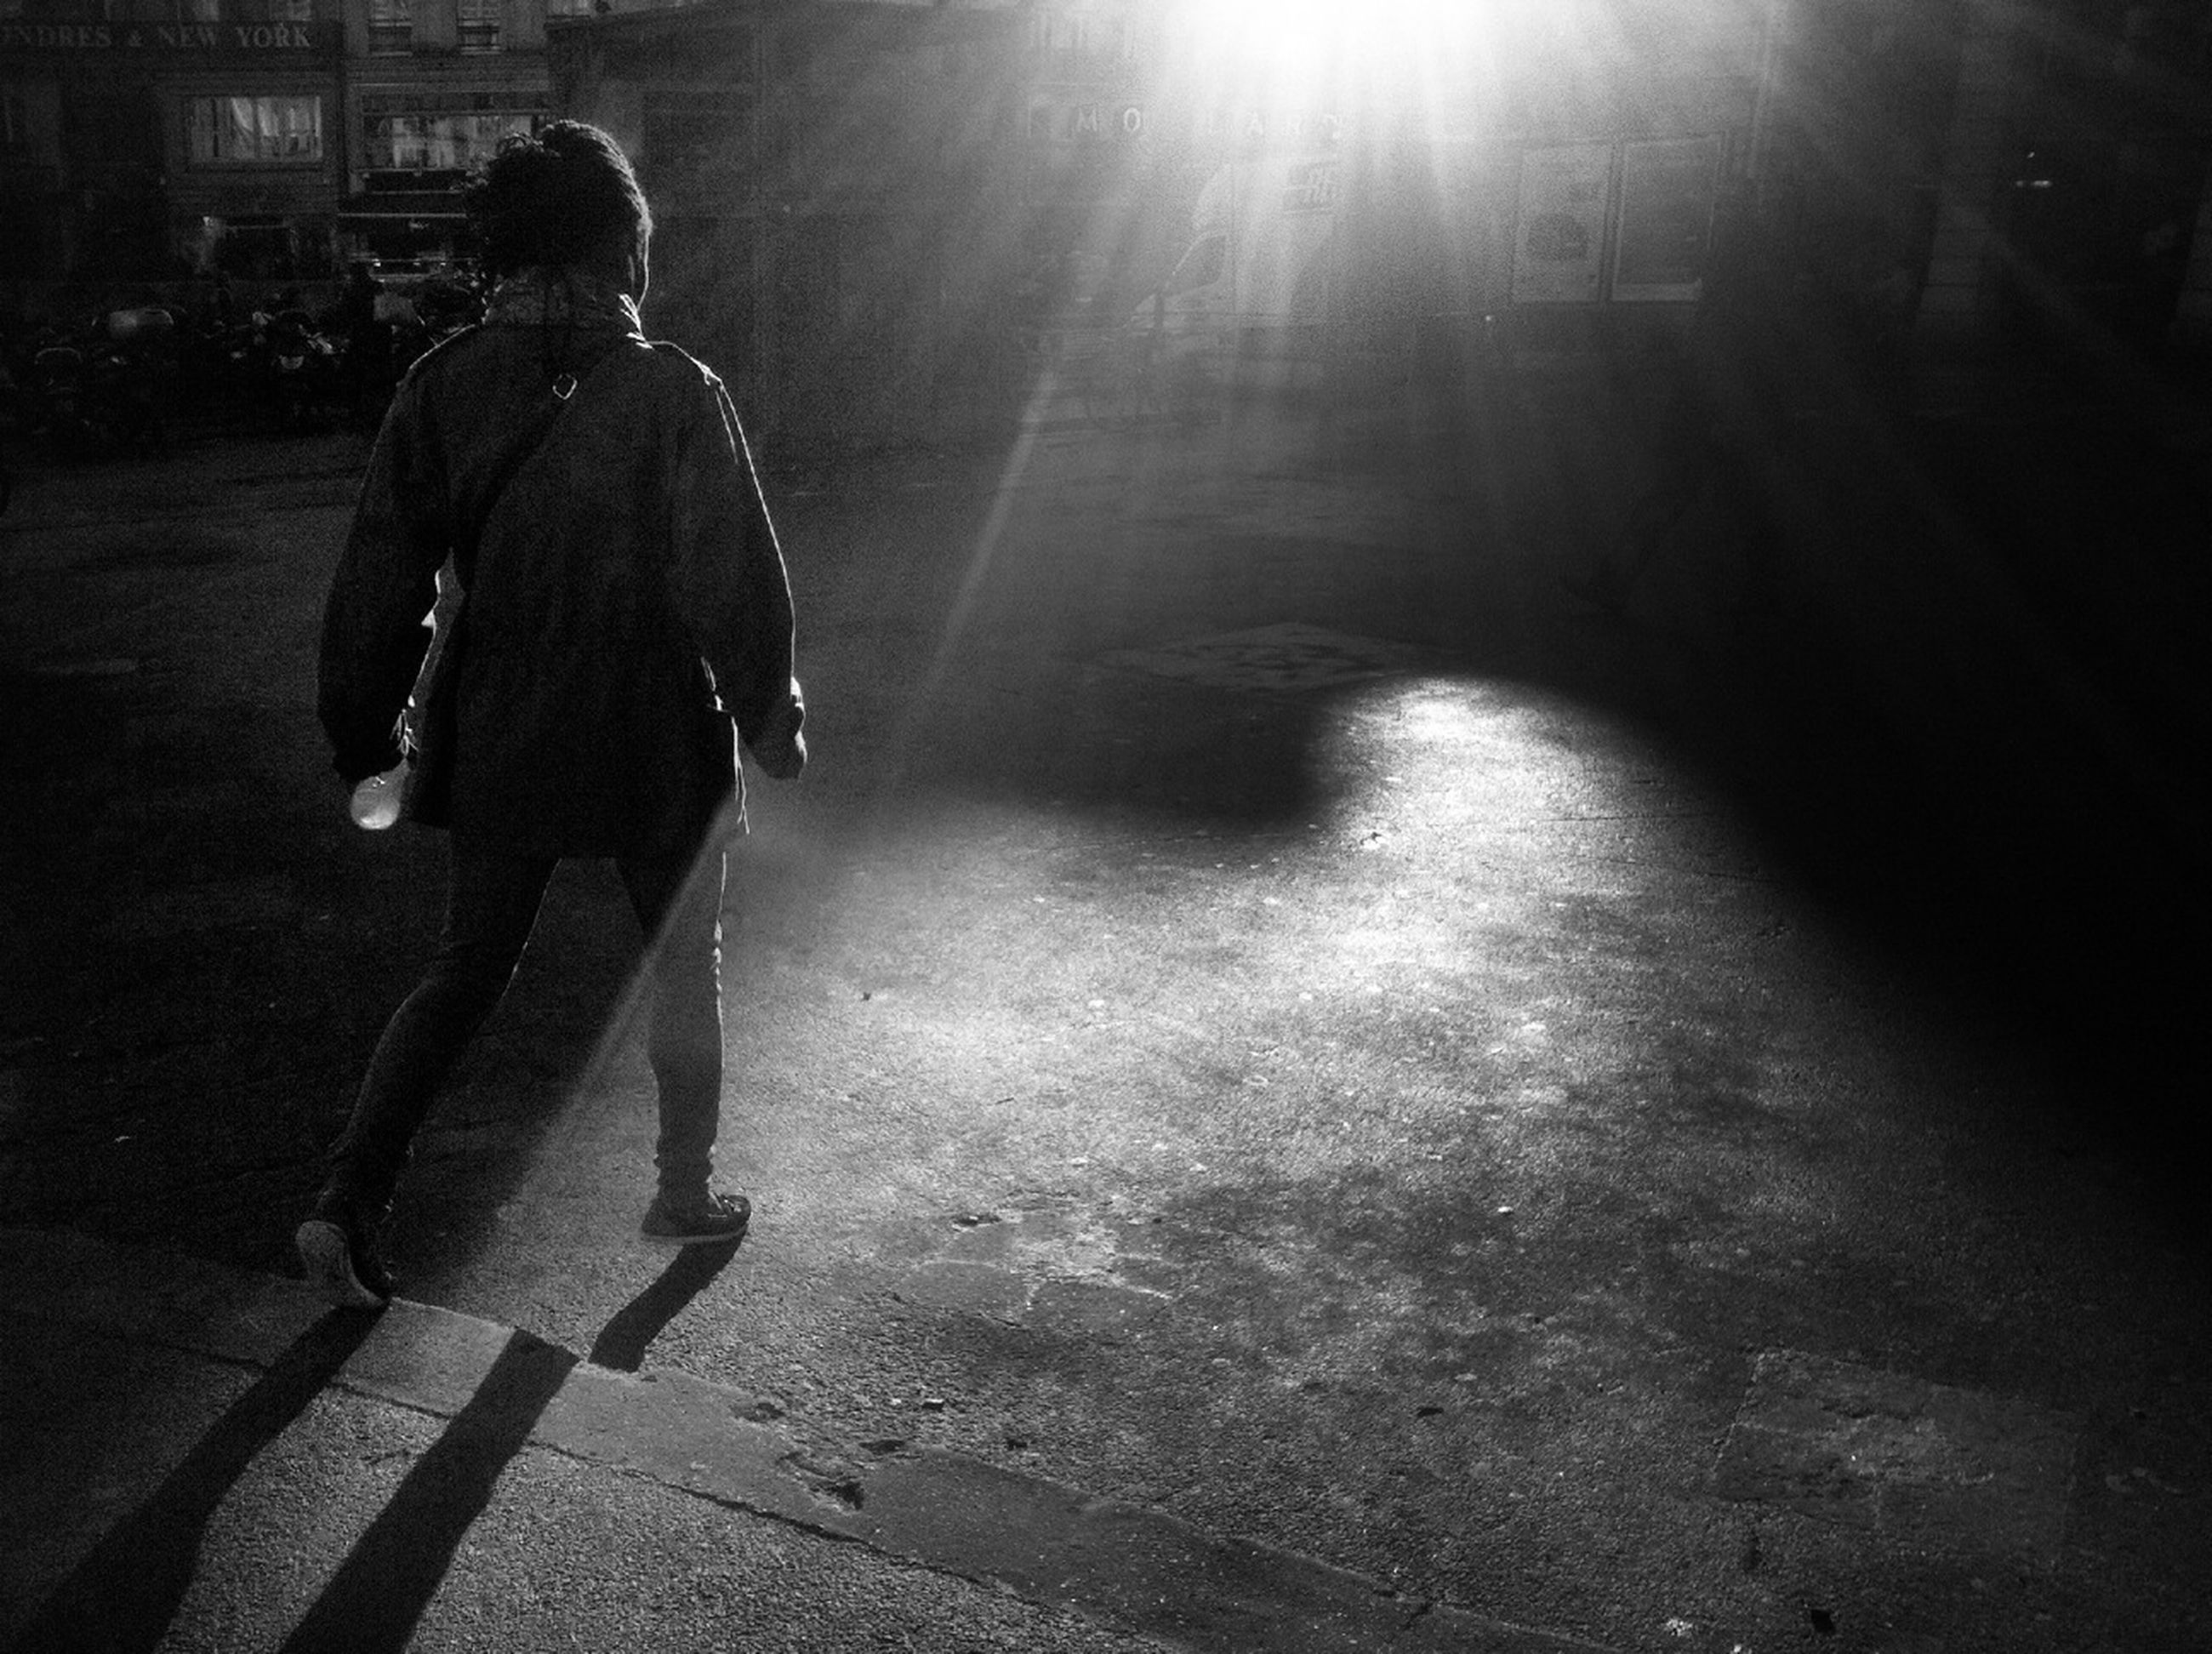 walking, lifestyles, full length, leisure activity, rear view, sunlight, shadow, men, person, standing, street, silhouette, sunbeam, casual clothing, road, outdoors, sunny, day